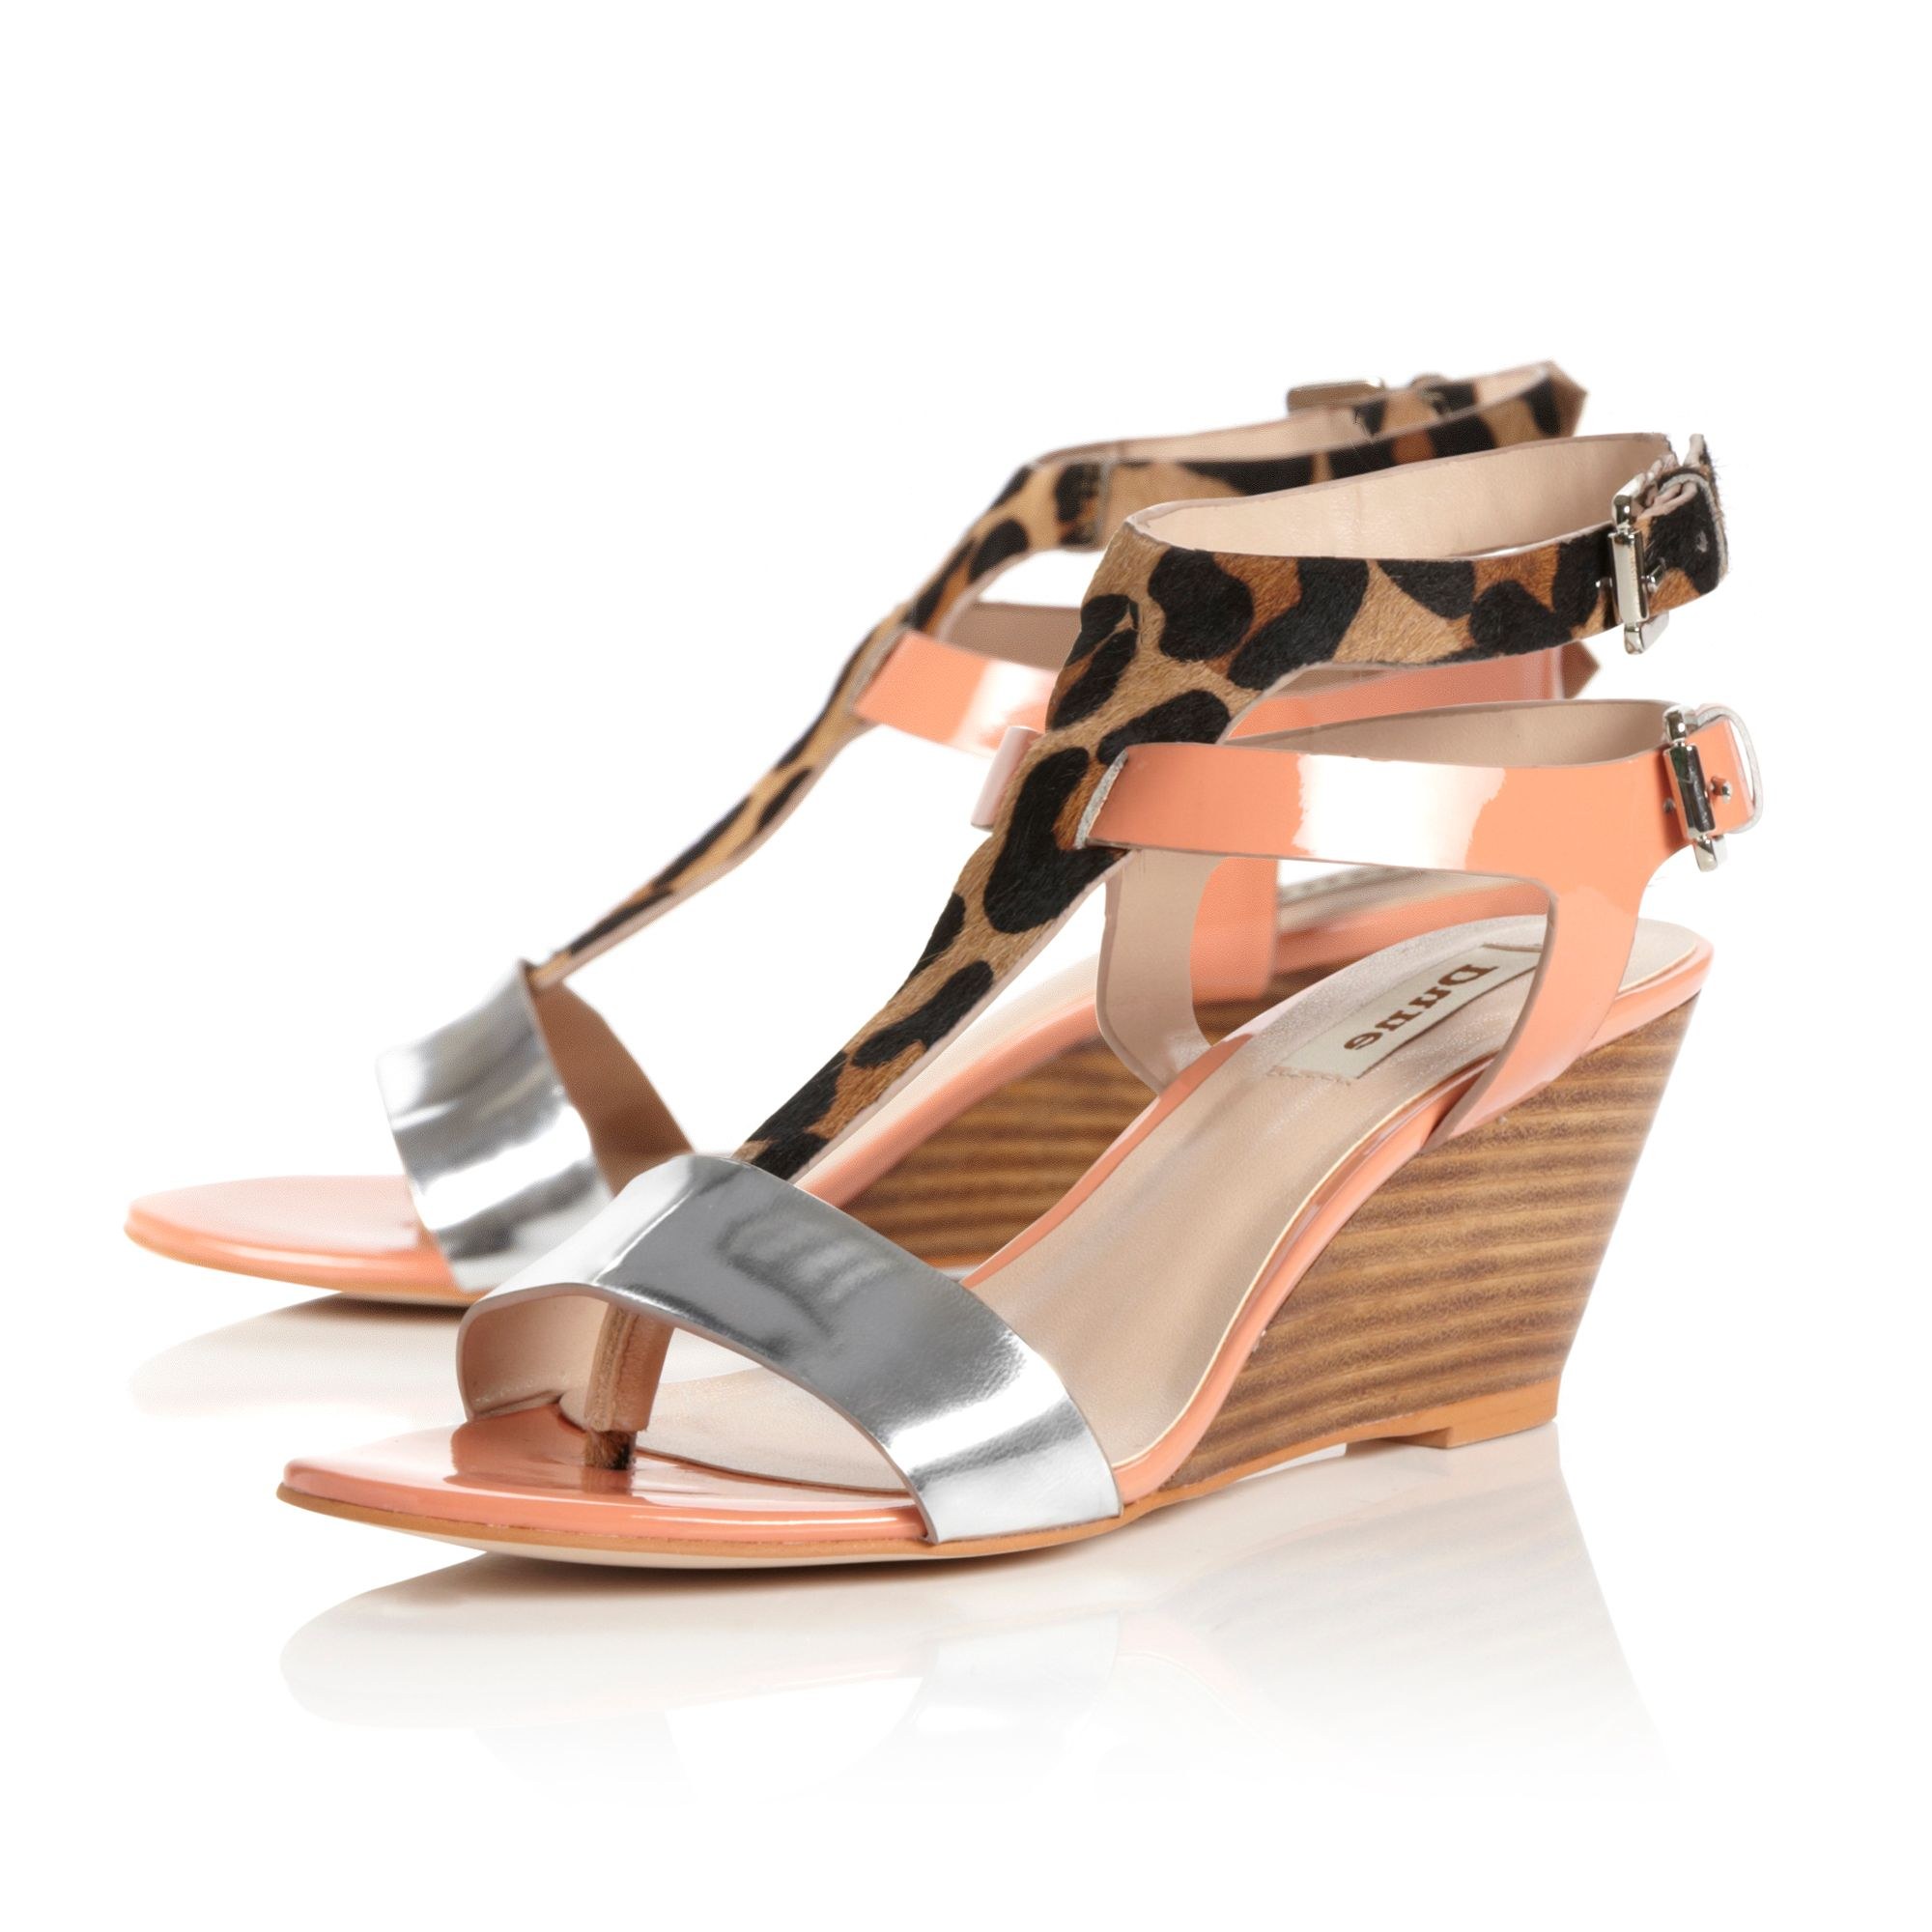 Gwinny double strap wedge shoes